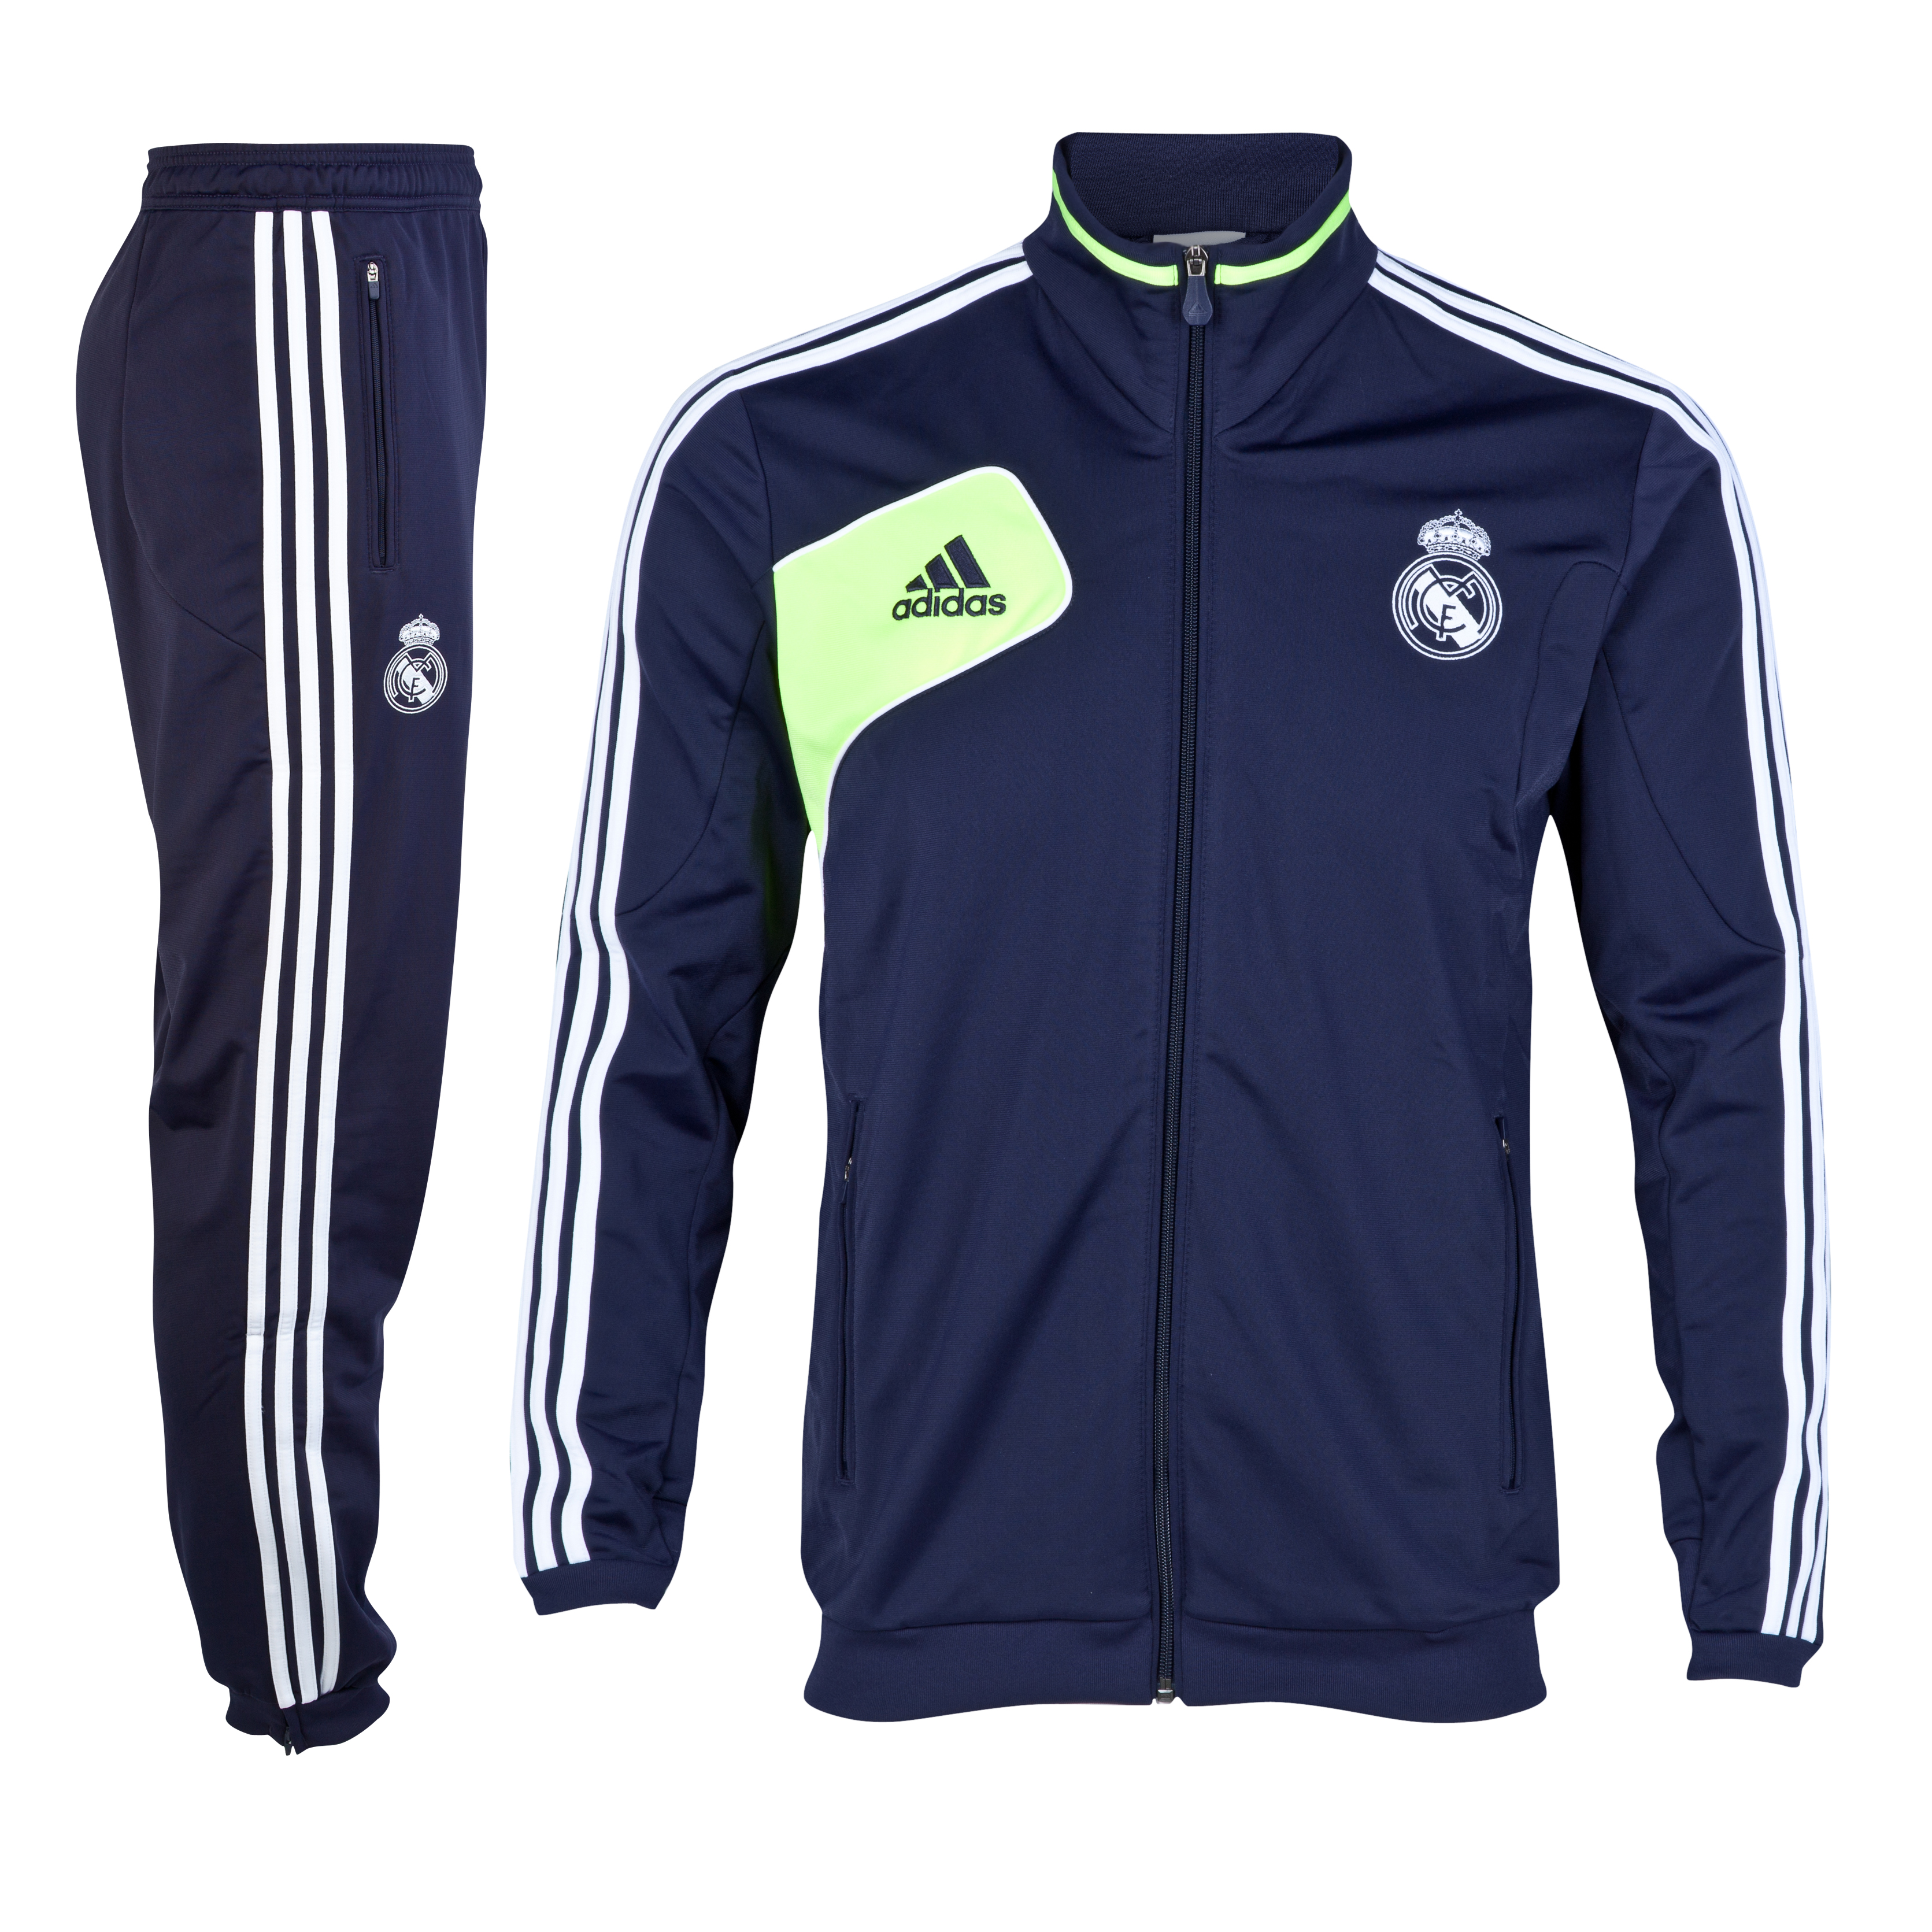 Real Madrid Training Presentation Suit - Noble Ink/Electricity/White